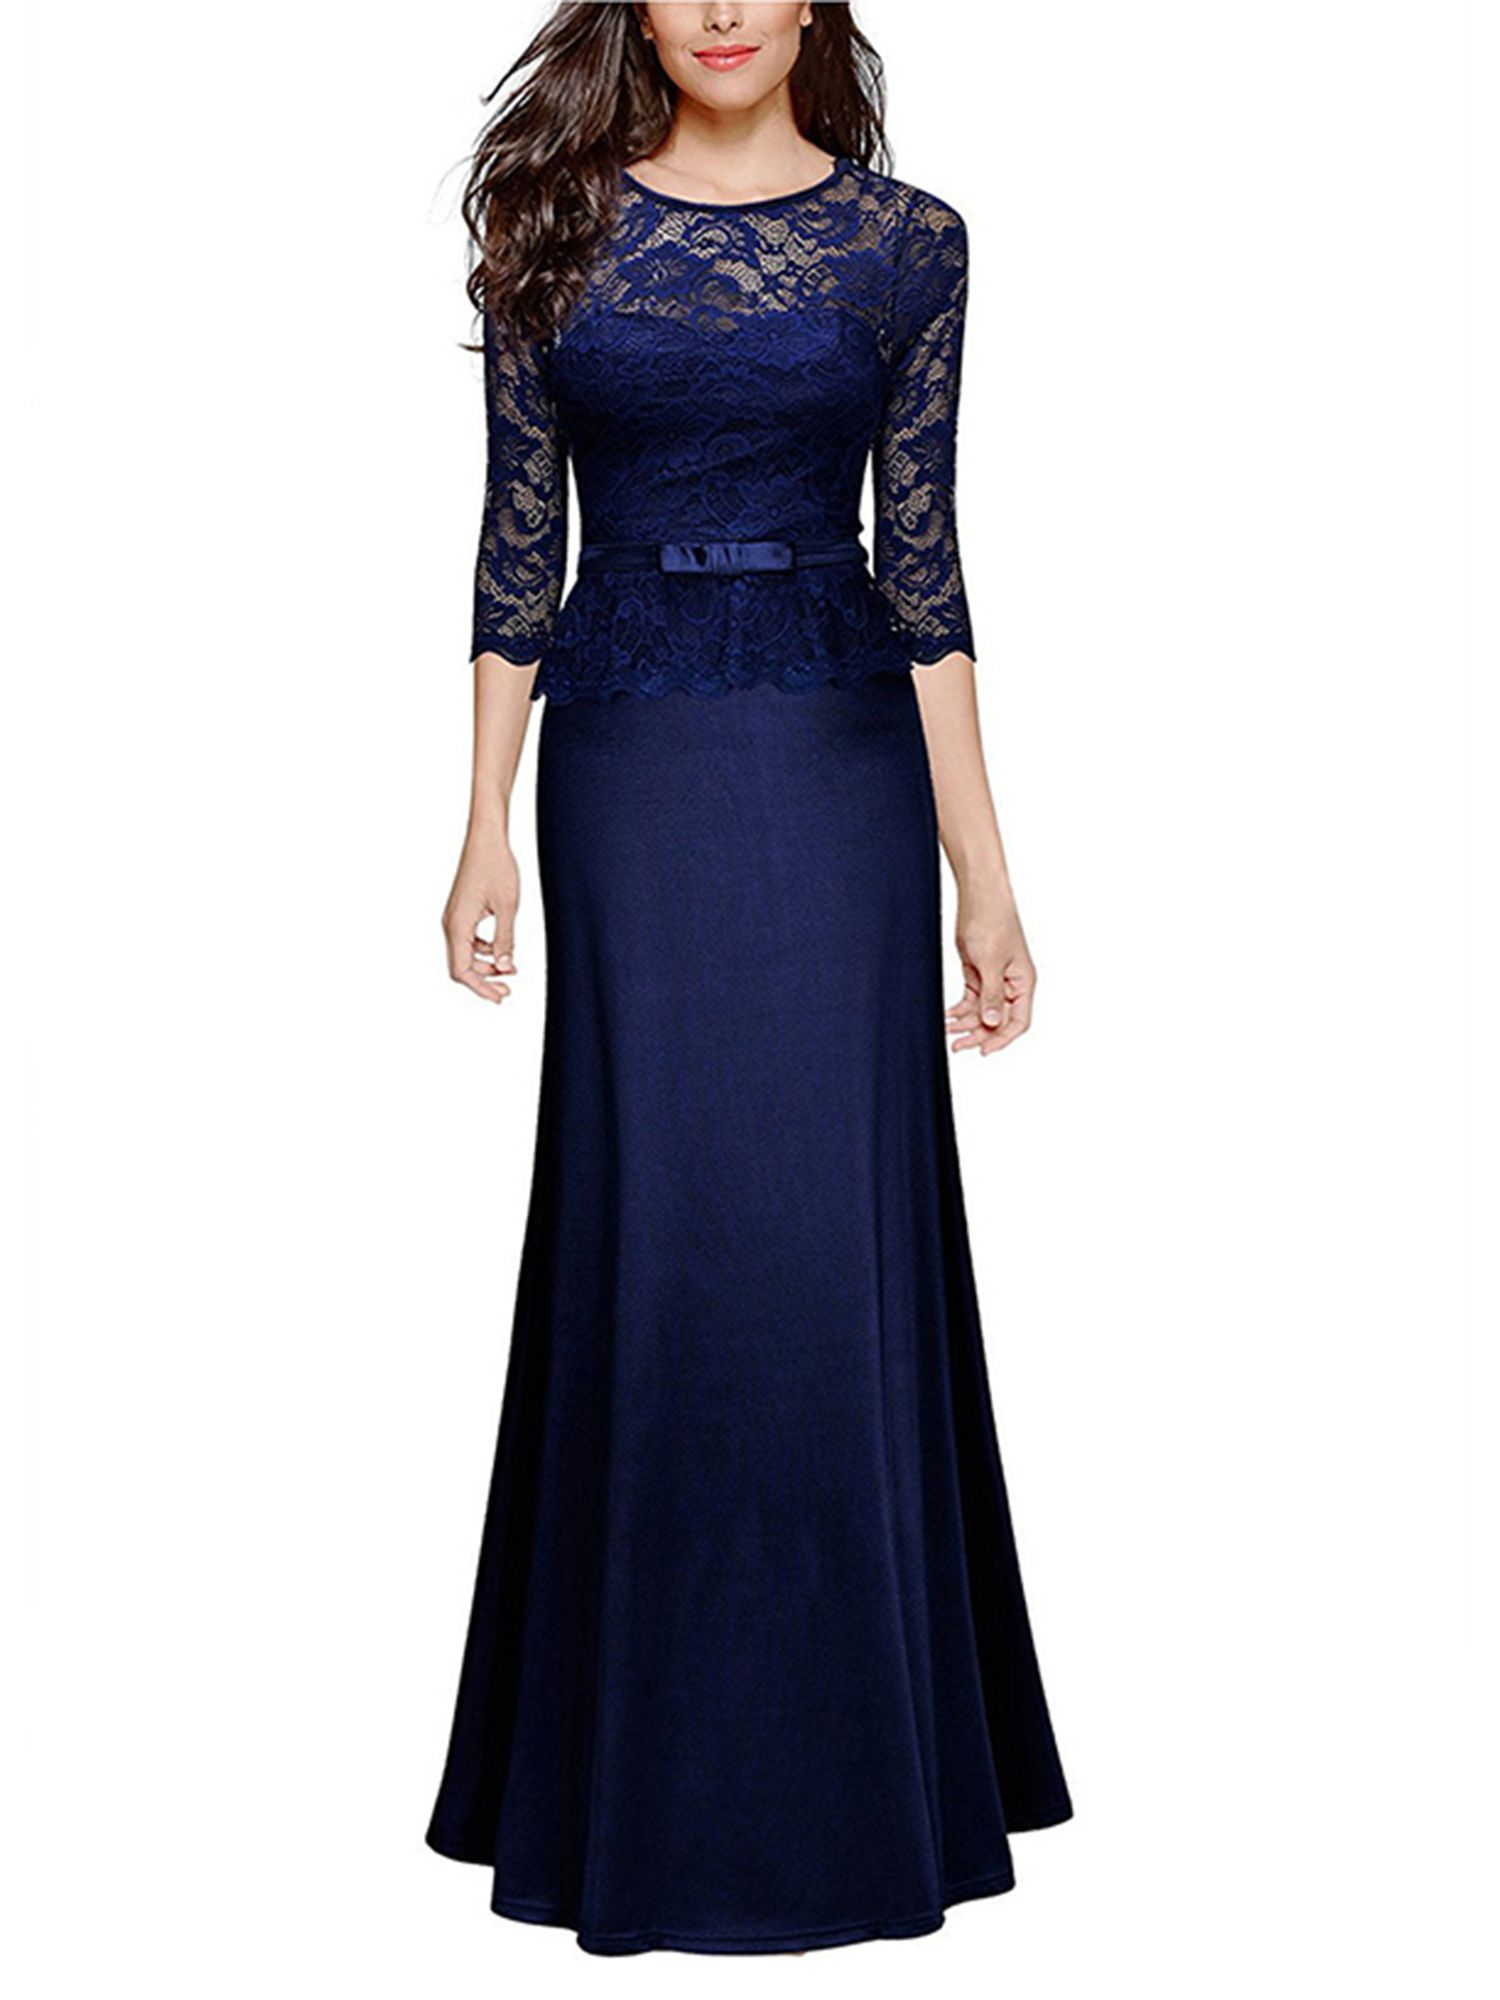 Women Vintage Lace Maxi Dress 3 4 Sleeve Slim Cocktail Formal Evening Ball Gowns Party Prom Bridesmaid Wedd Maxi Dress Wedding Party Dress Long Lace Maxi Dress [ 2000 x 1500 Pixel ]